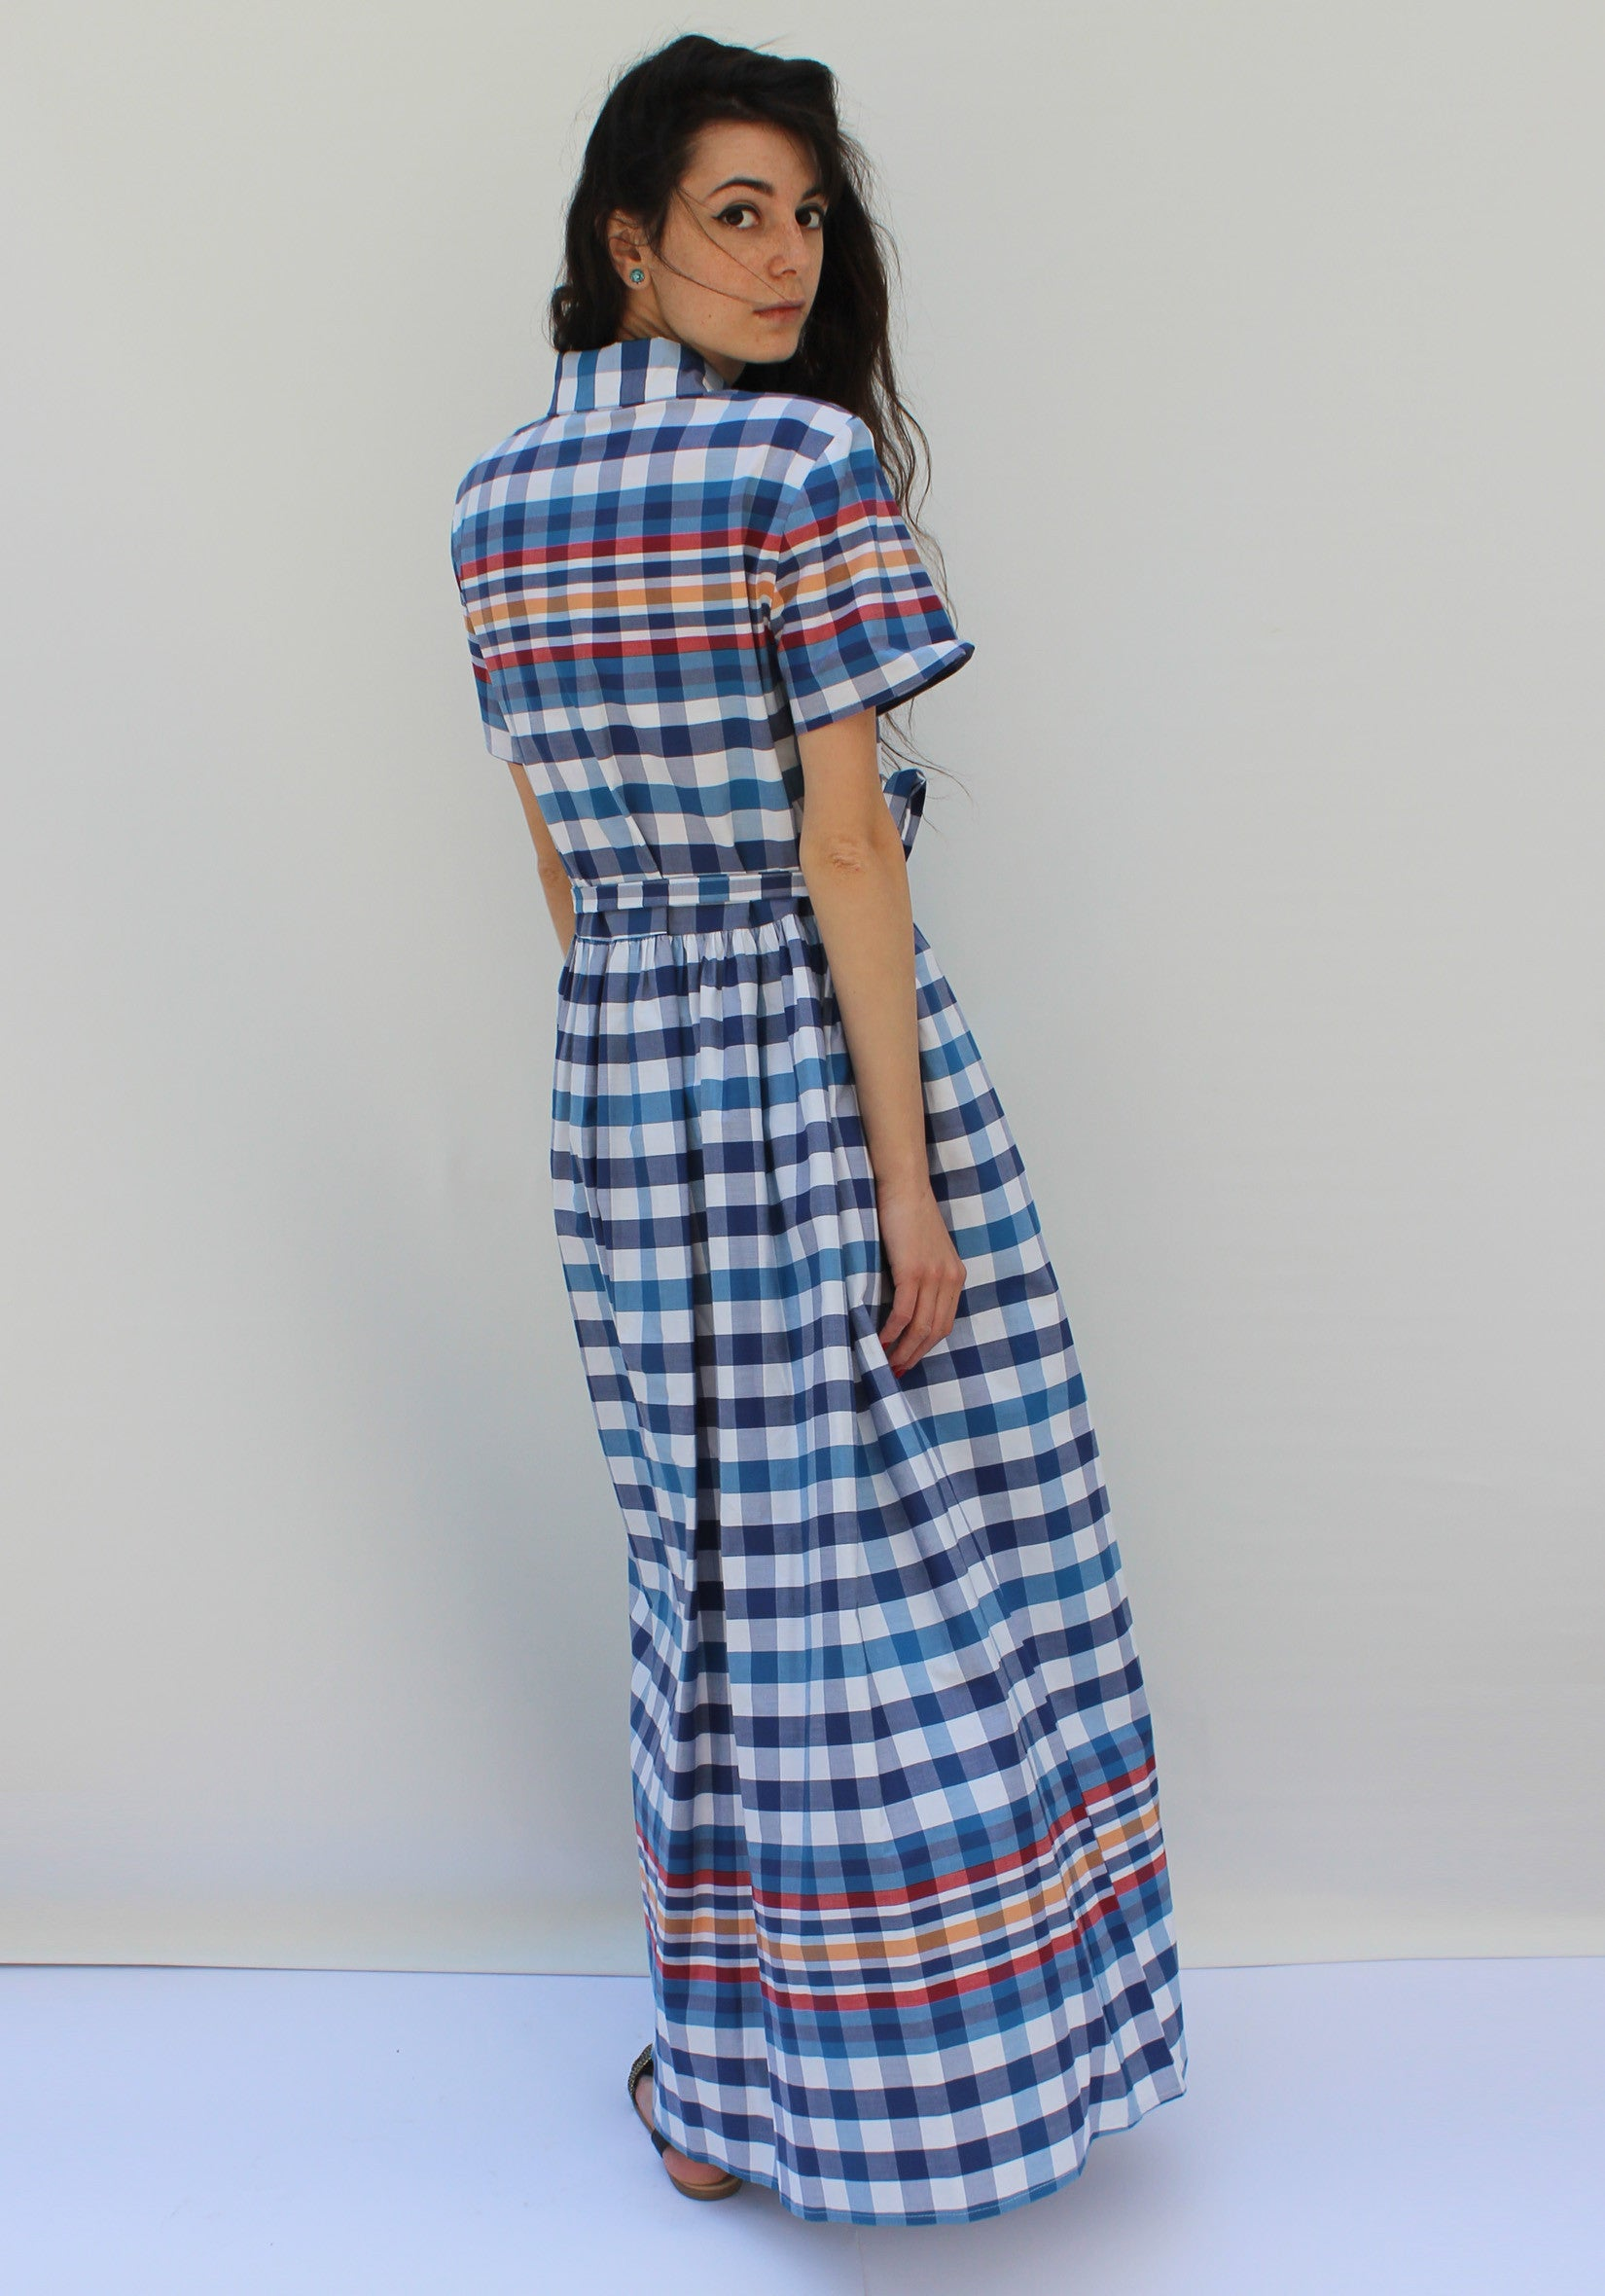 Plaids sunny dress - שמלת סאני מקסי משבצות